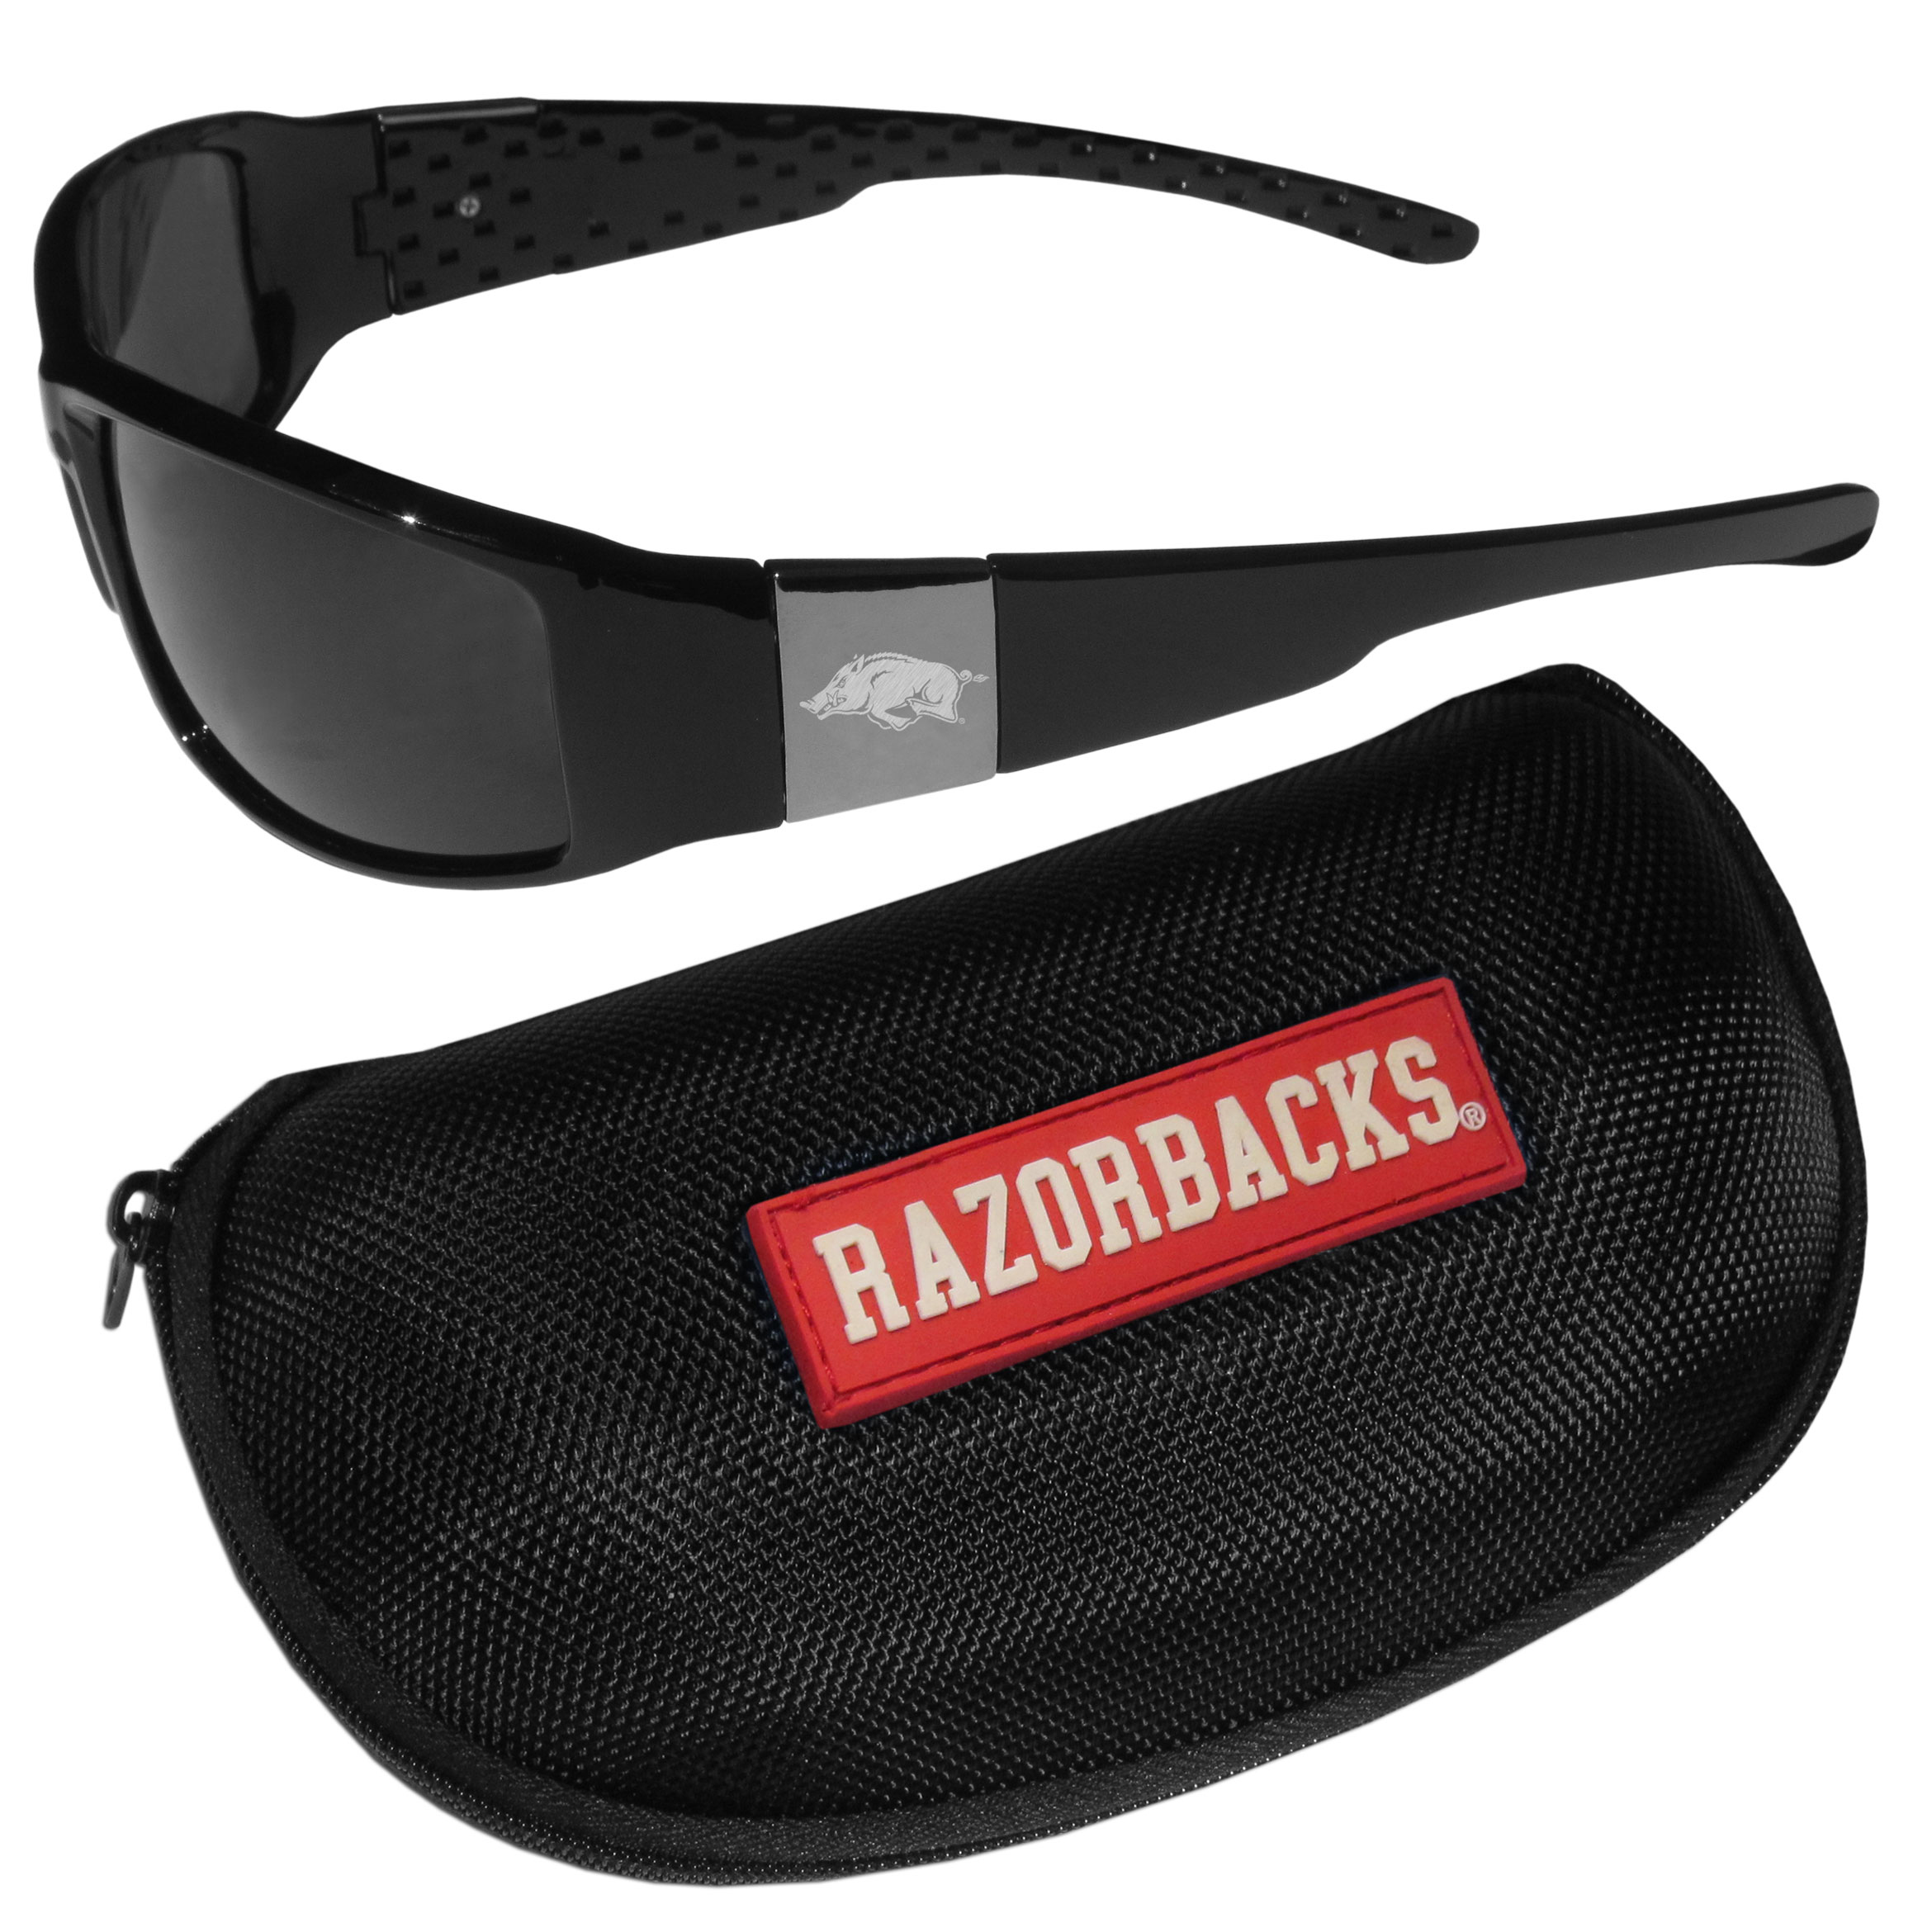 Arkansas Razorbacks Chrome Wrap Sunglasses and Zippered Carrying Case - These designer inspired frames have a sleek look in all black with high-polish chrome Arkansas Razorbacks shields on each arm with an etched logo. The shades are perfect any outdoor activity like; golfing, driving, hiking, fishing or cheering on the team at a tailgating event or an at home game day BBQ with a lens rating of 100% UVA/UVB for maximum UV protection. The high-quality frames are as durable as they are fashionable and with their classic look they are perfect fan accessory that can be worn everyday for every occasion. The shades come with a zippered hard shell case to keep your sunglasses safe.